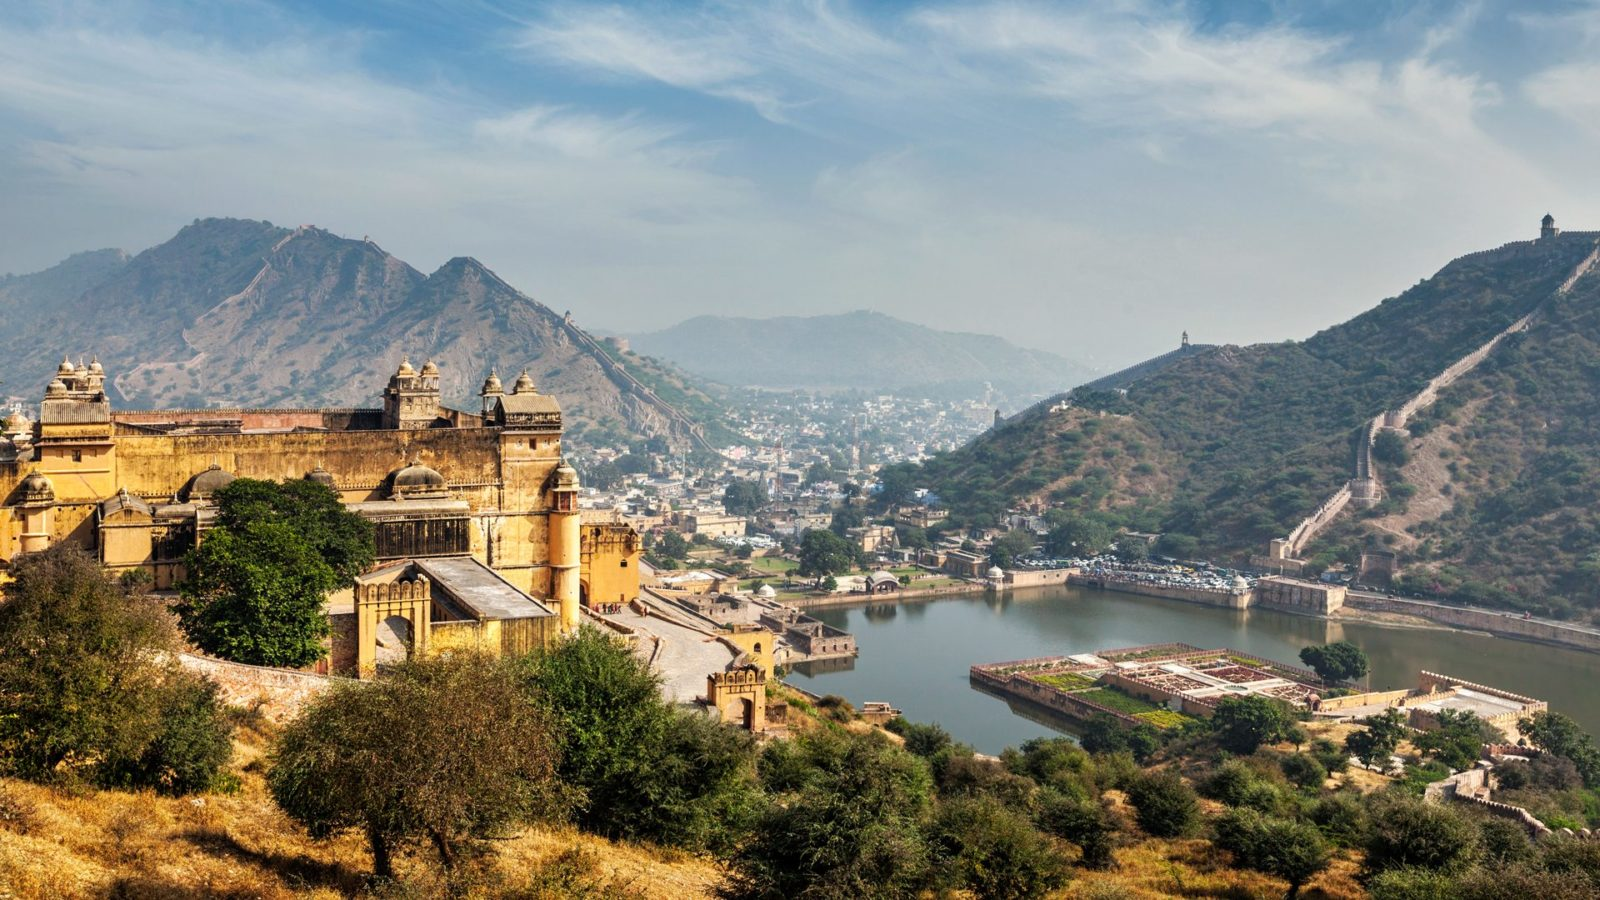 Amber-fort-jaipur-Rajasthan-India-1600x9